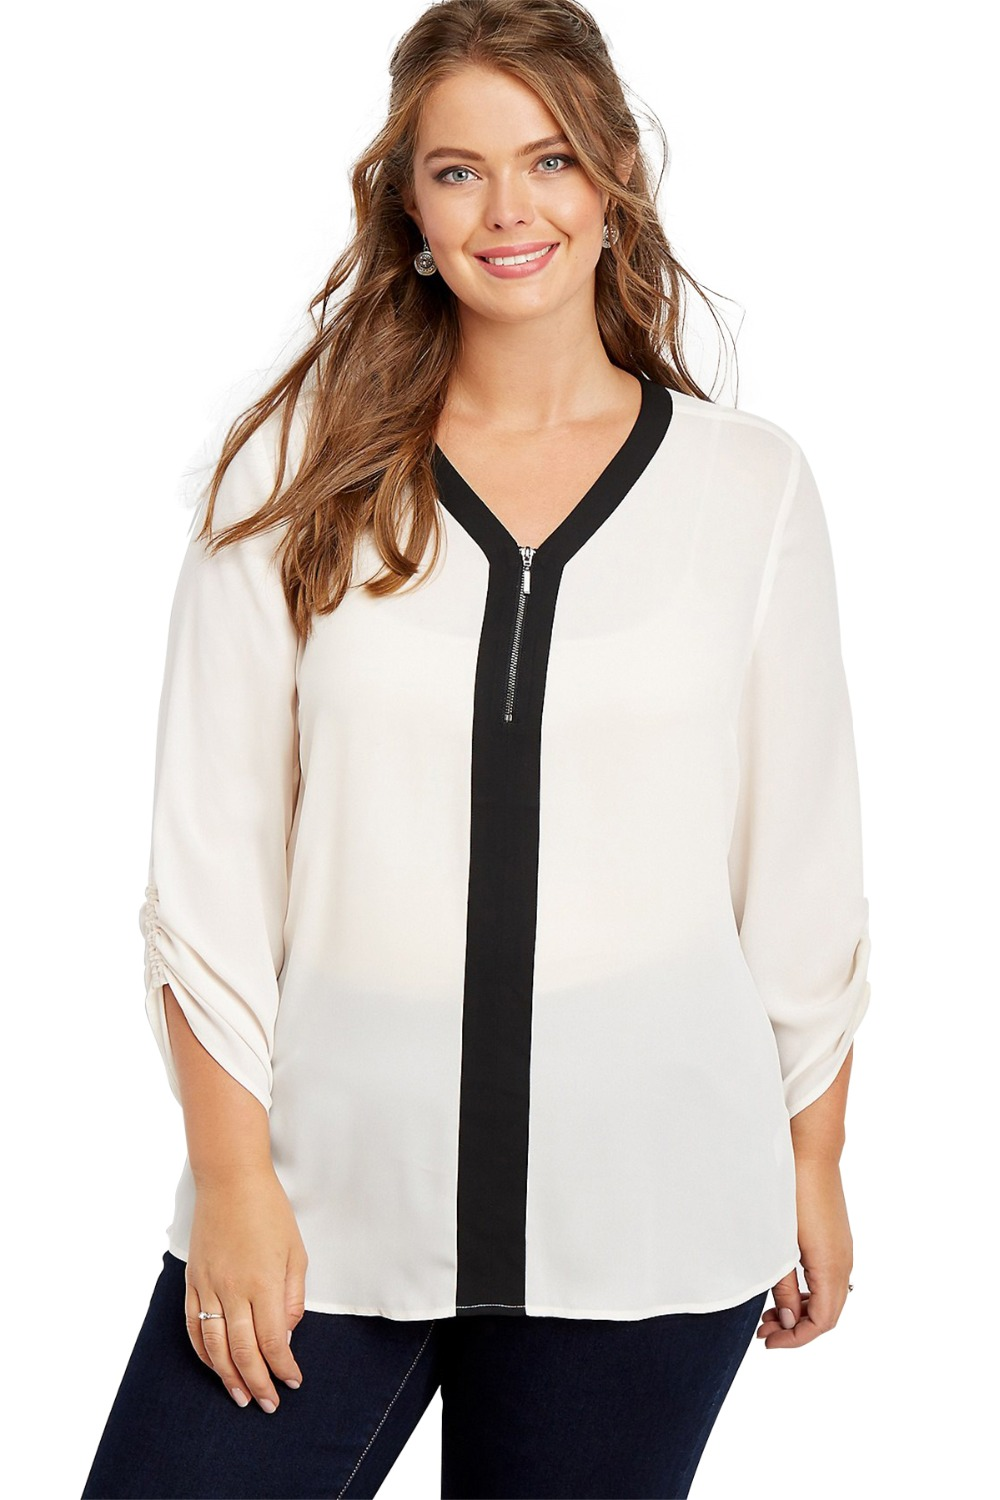 d5aa1ab8752e04 Detail Feedback Questions about Gosopin Casual Plus Size Blouse ...